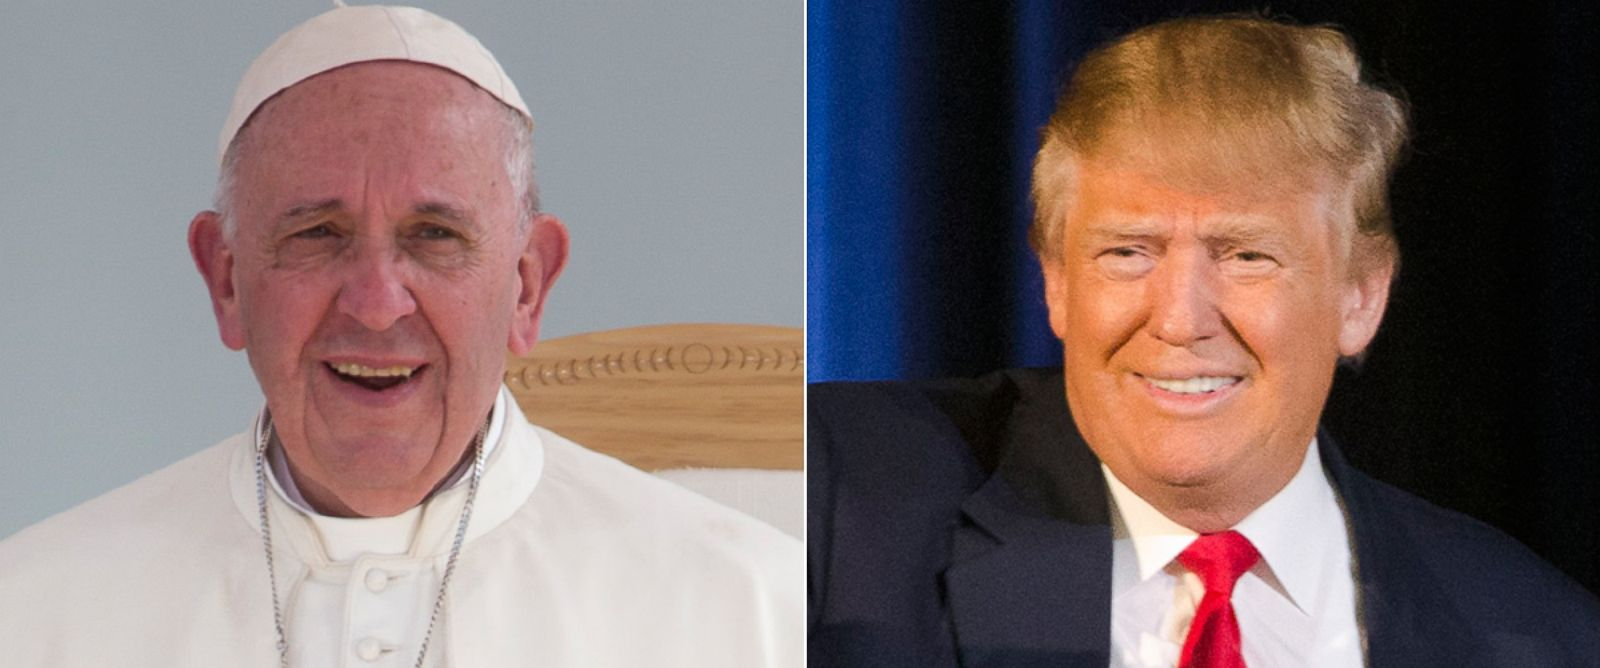 PHOTO:Pope Francis at Jose Maria Morelos Stadium, Feb. 16, 2016, in Morelia, Mexico.Donald Trump on stage at a campaign stop, Feb. 17, 2016, in Bluffton, S.C.